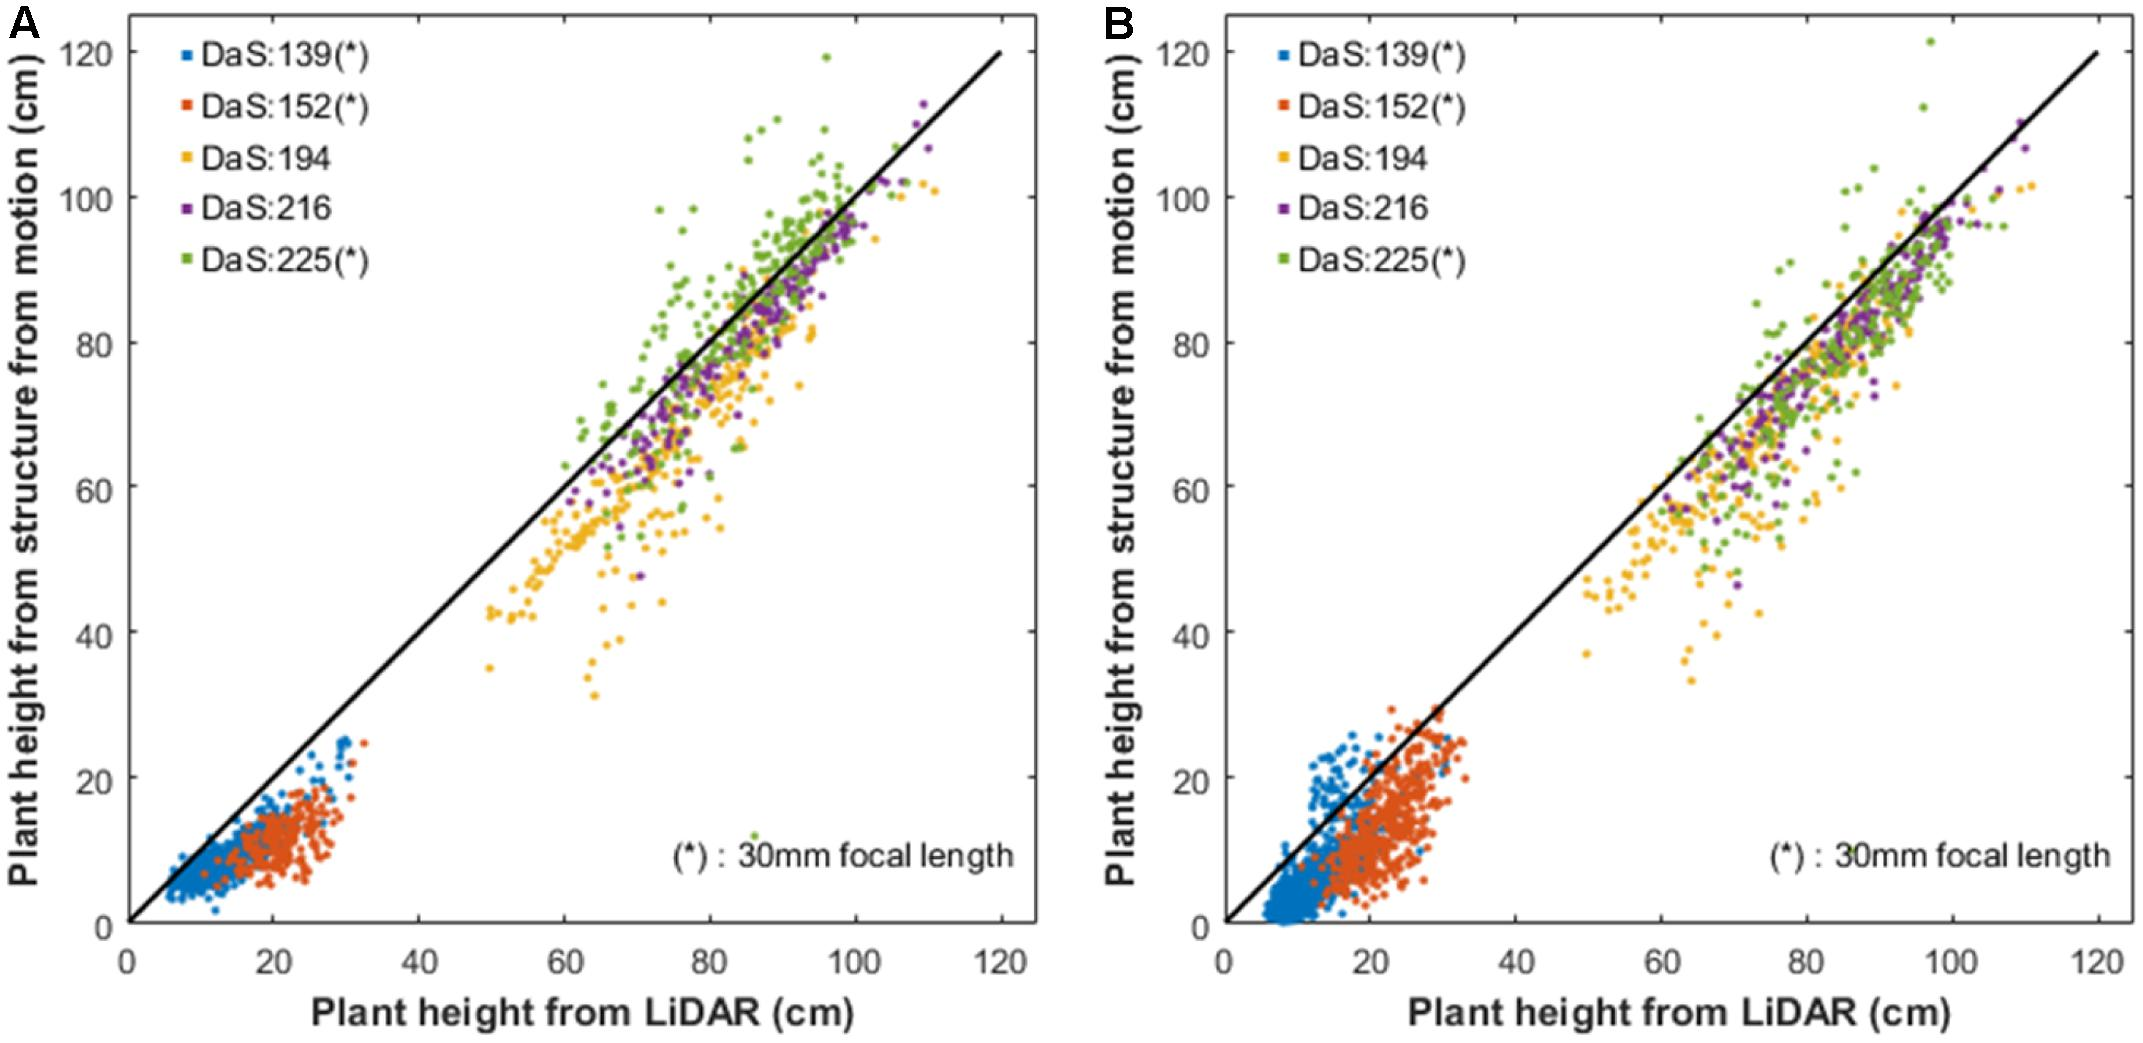 Frontiers | High-Throughput Phenotyping of Plant Height